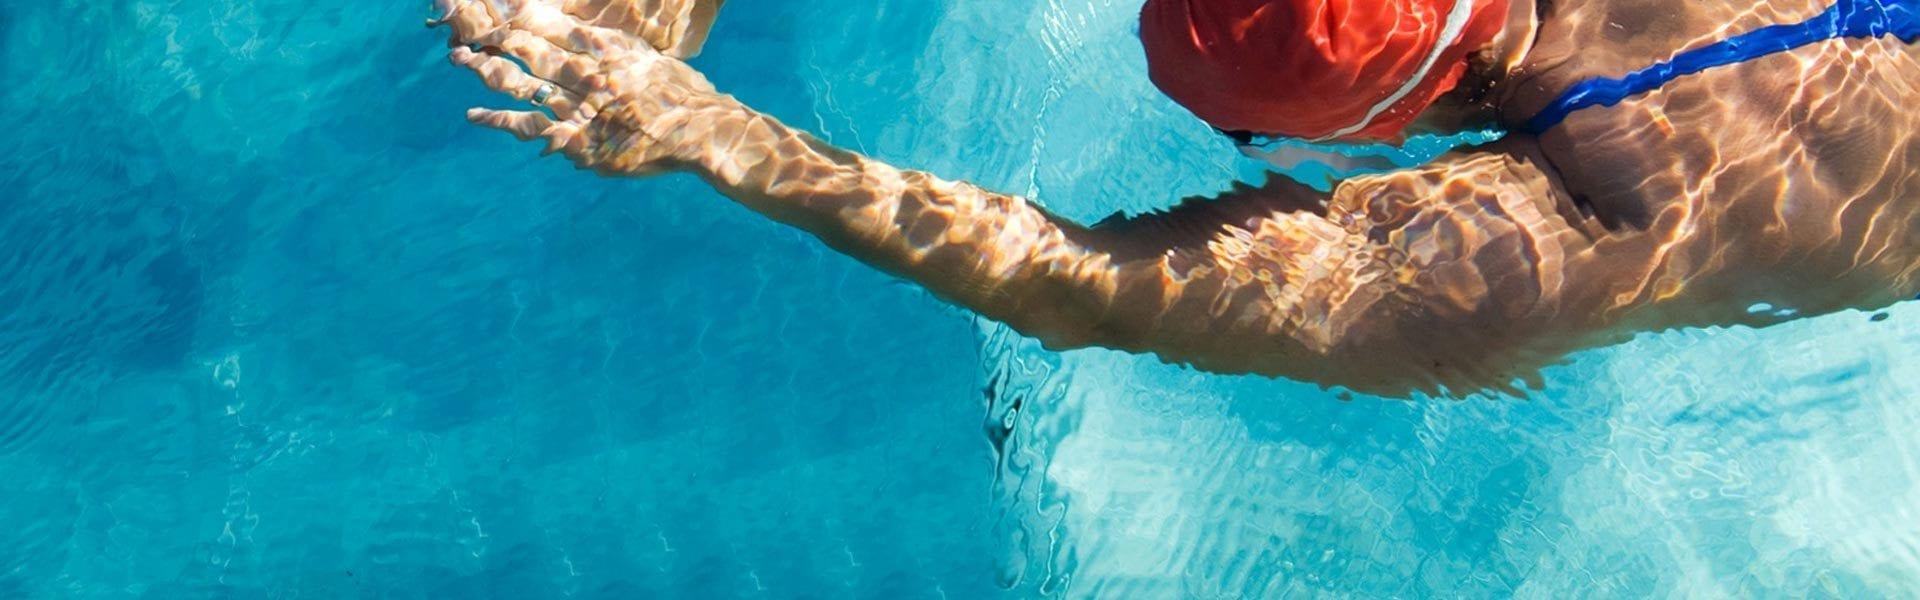 We provide services to athletes in swimming sports, from Olympians to the casual swimmer